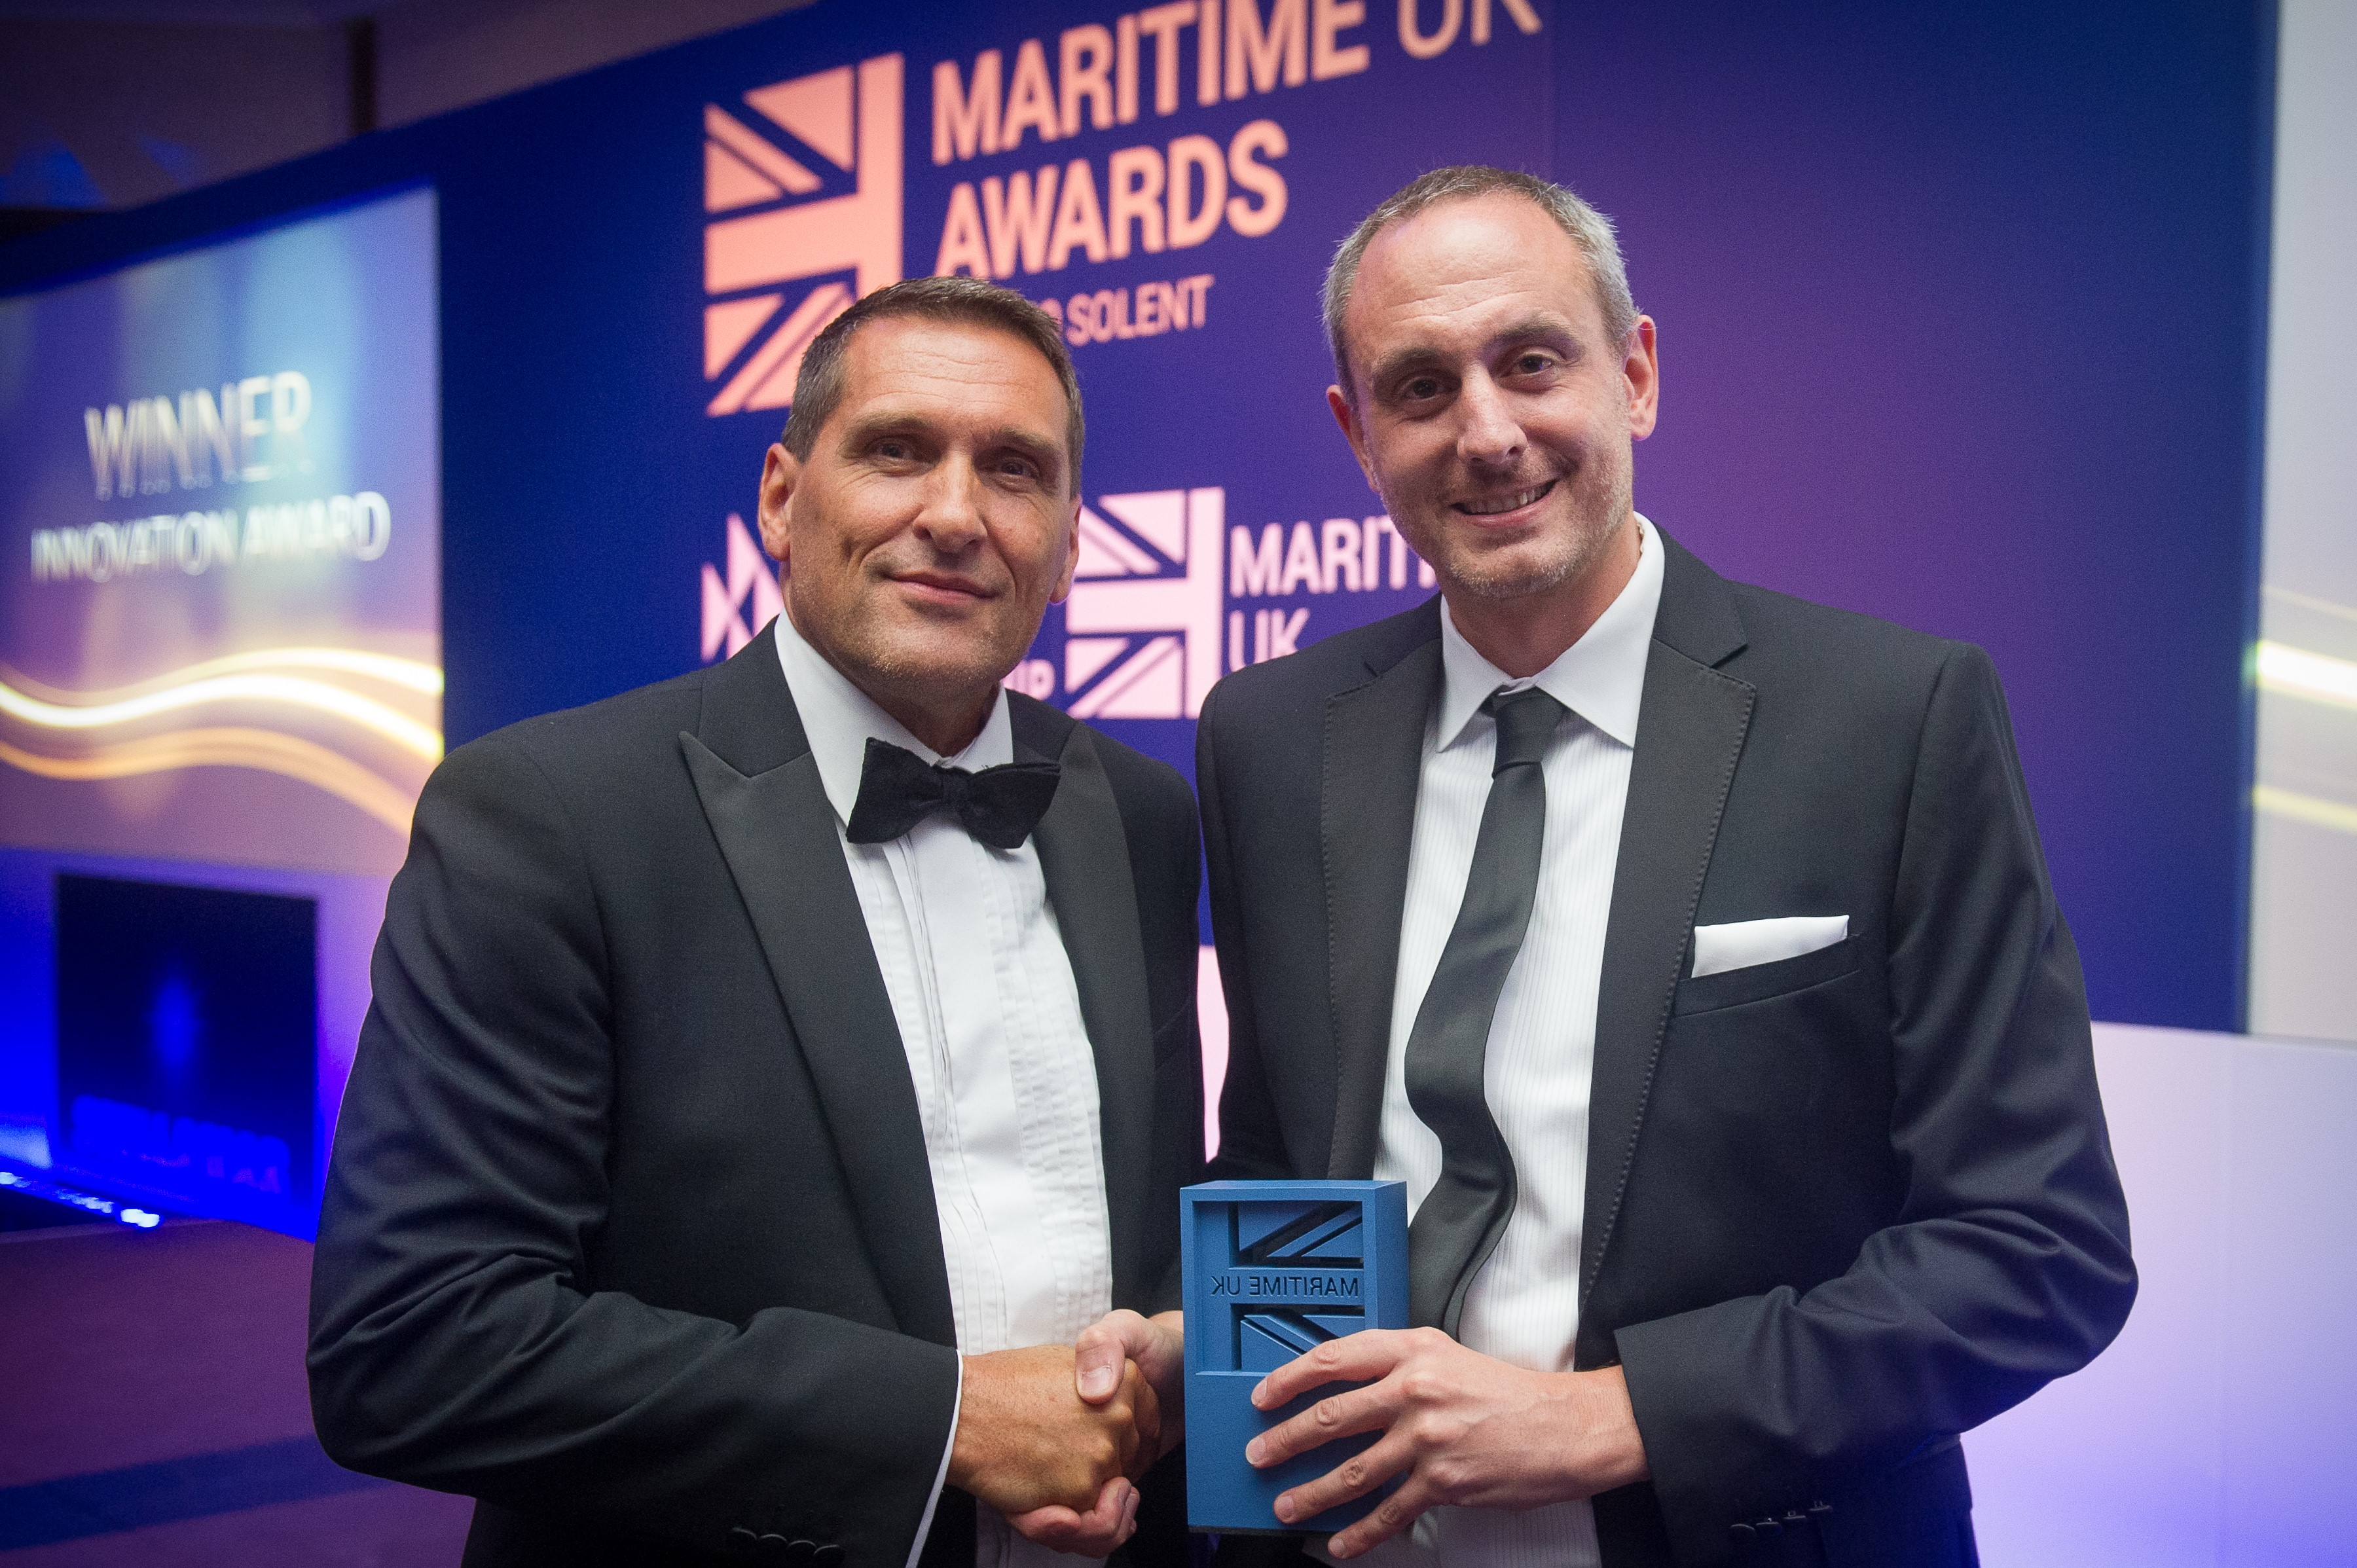 UK Ship Register presents national maritime innovation award